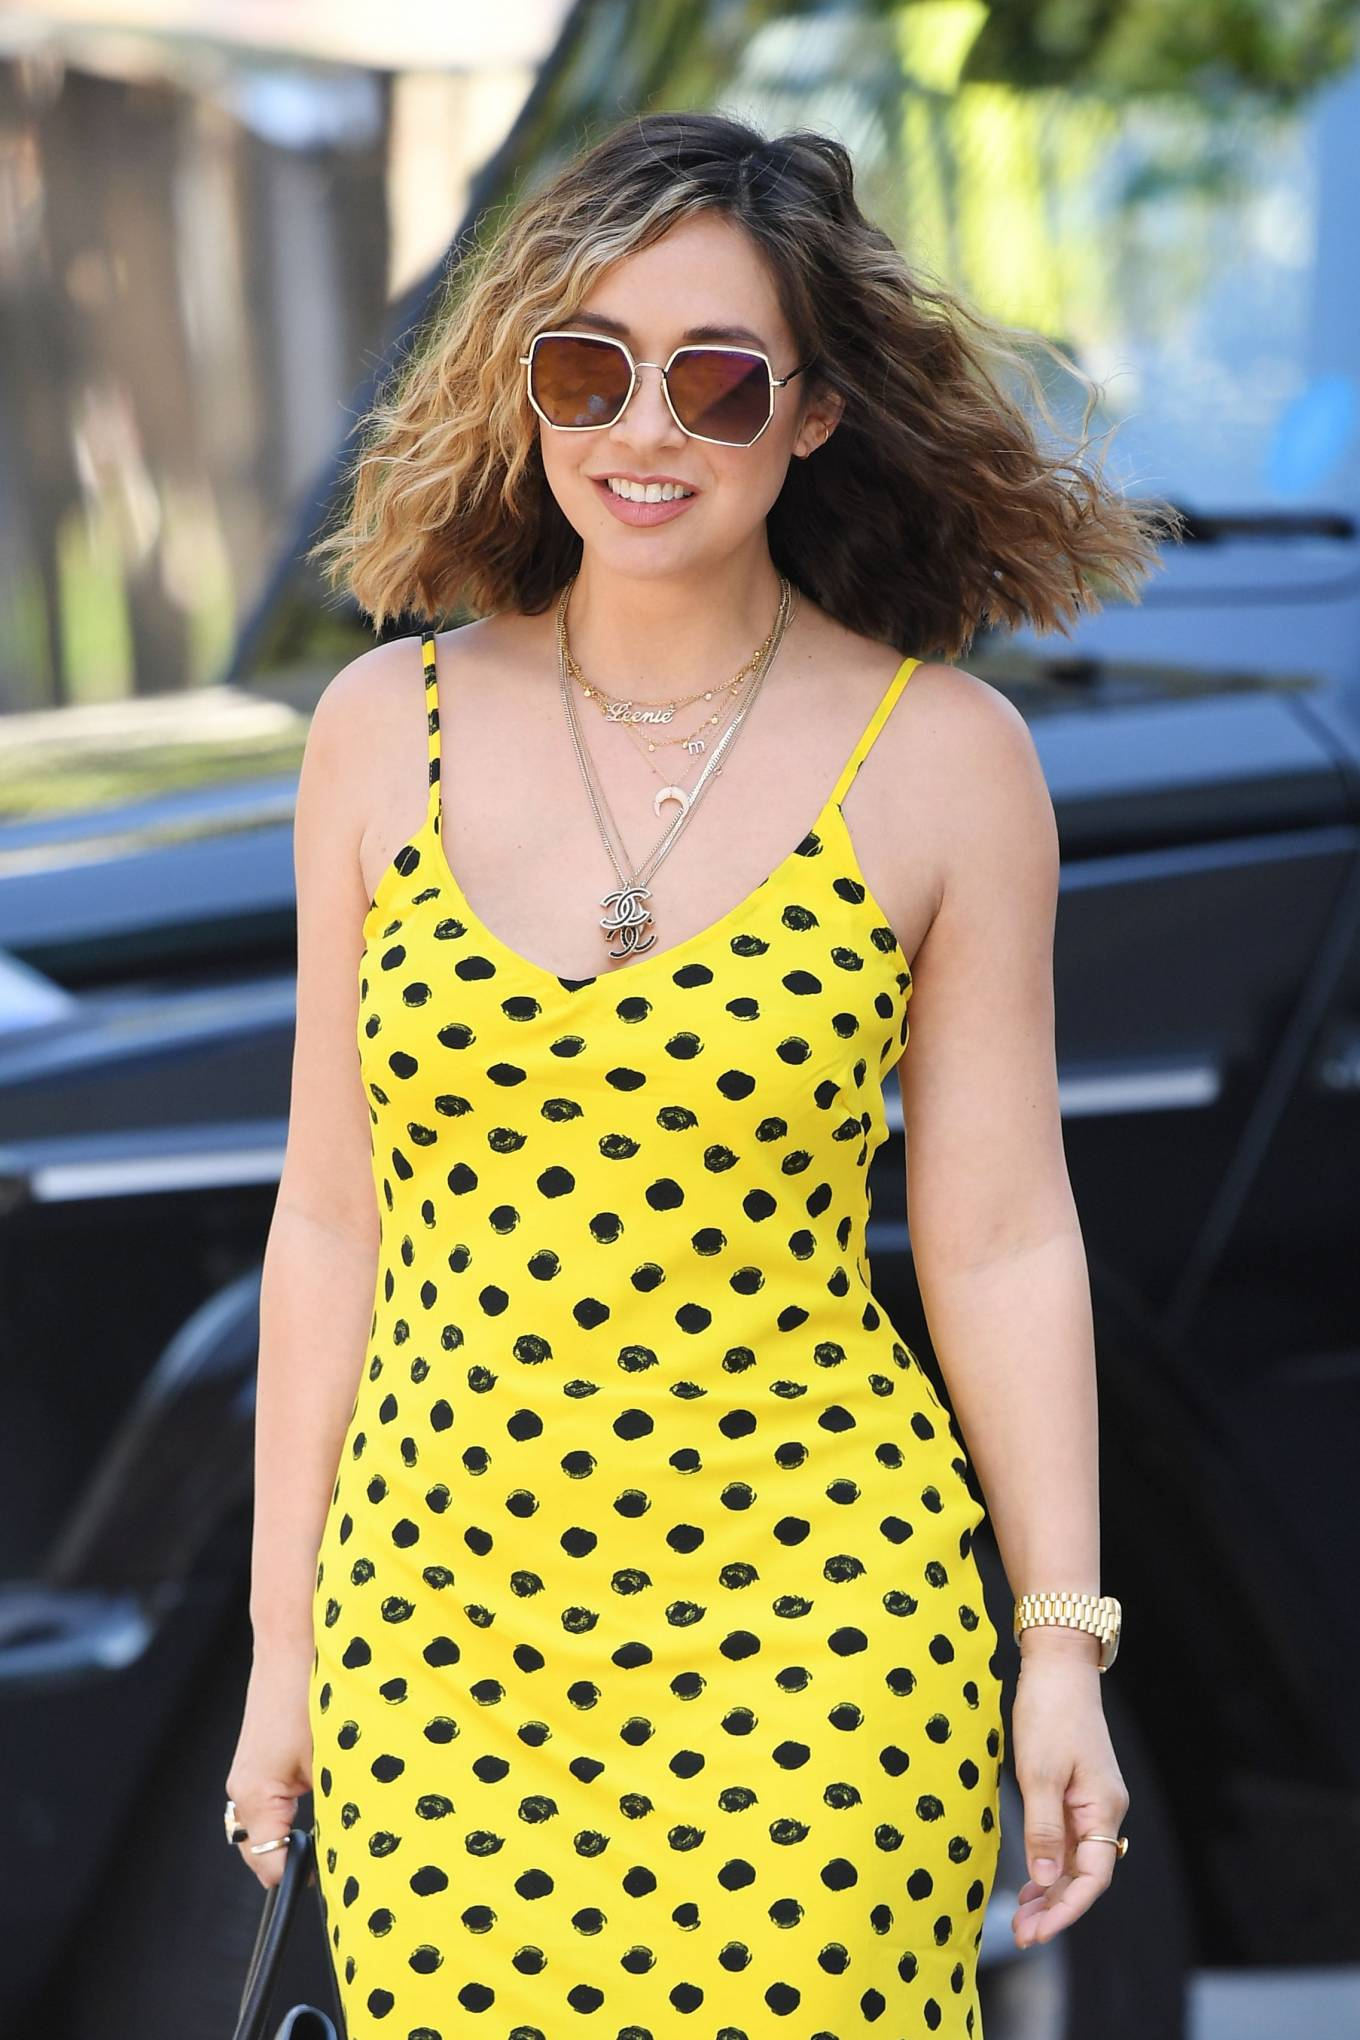 Myleene Klass 2020 : Myleene Klass – In yellow polka dot dress in London-28